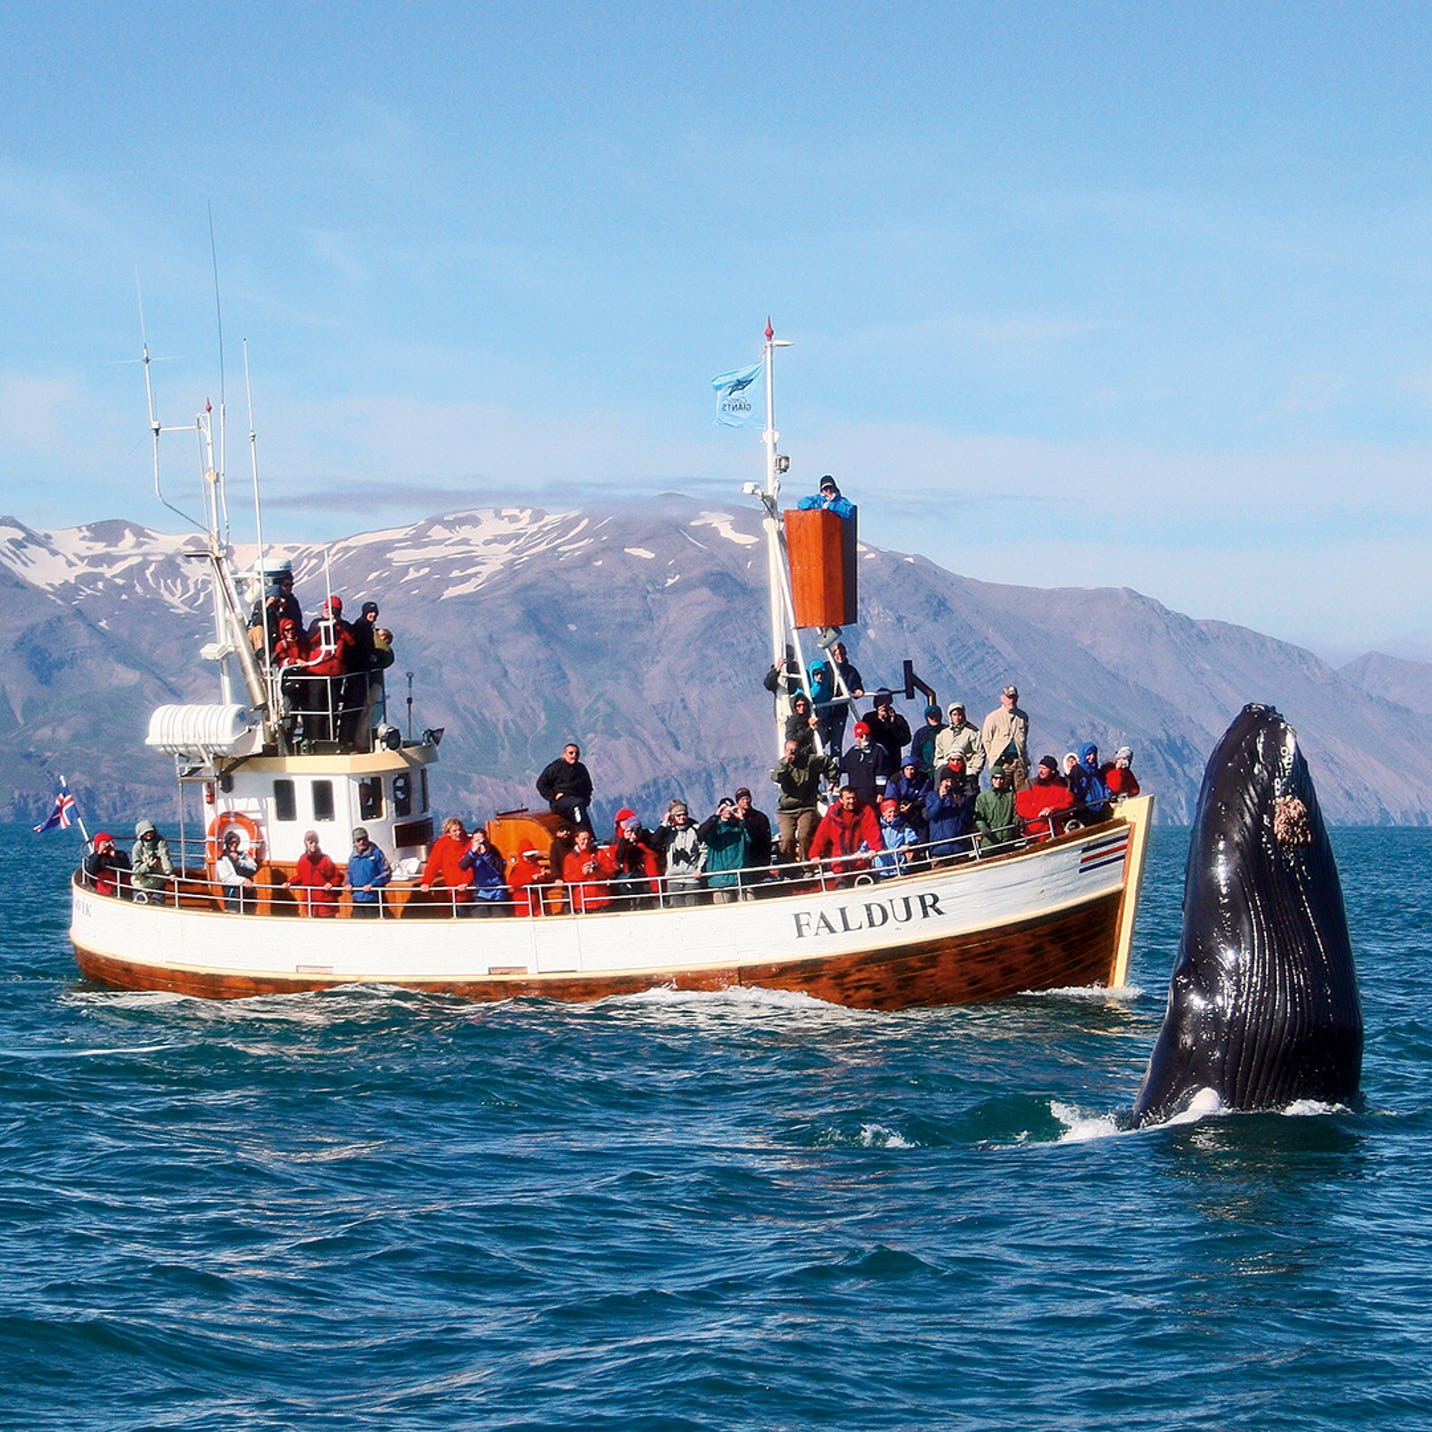 A boat of travellers whale watching off the coast of Iceland.